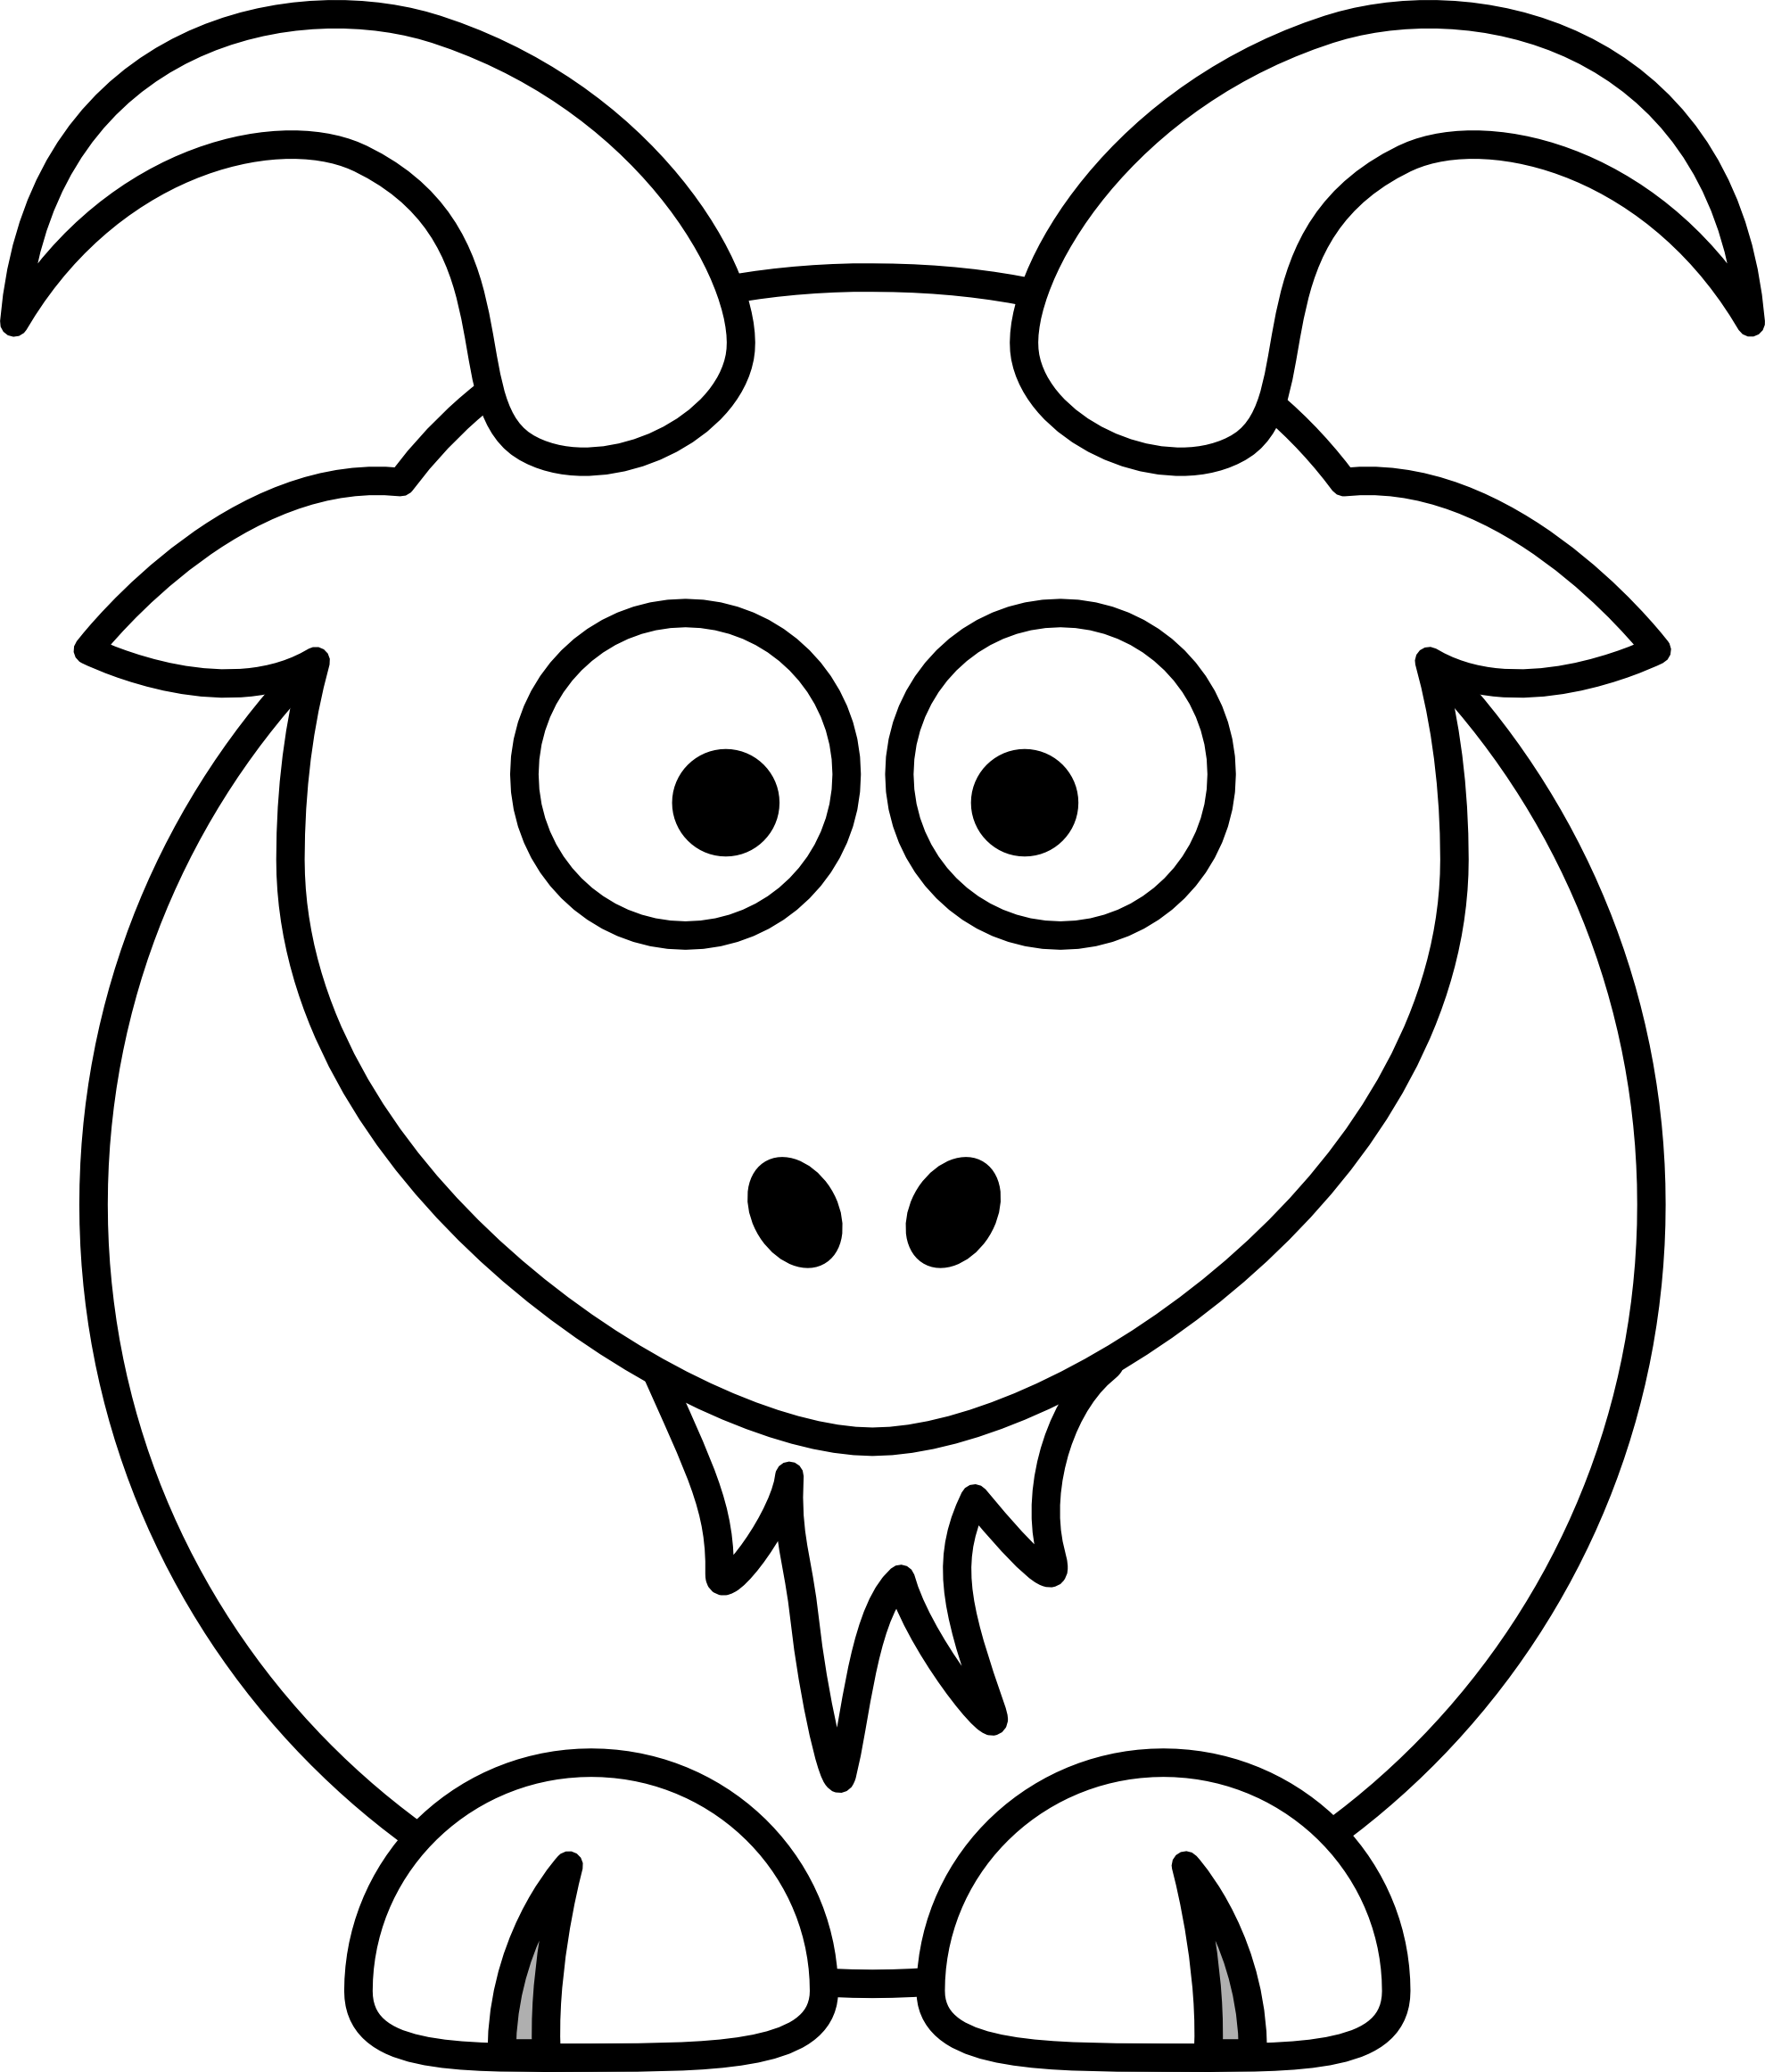 Line Drawings Of Cute Animals : Animal line drawings clipart best